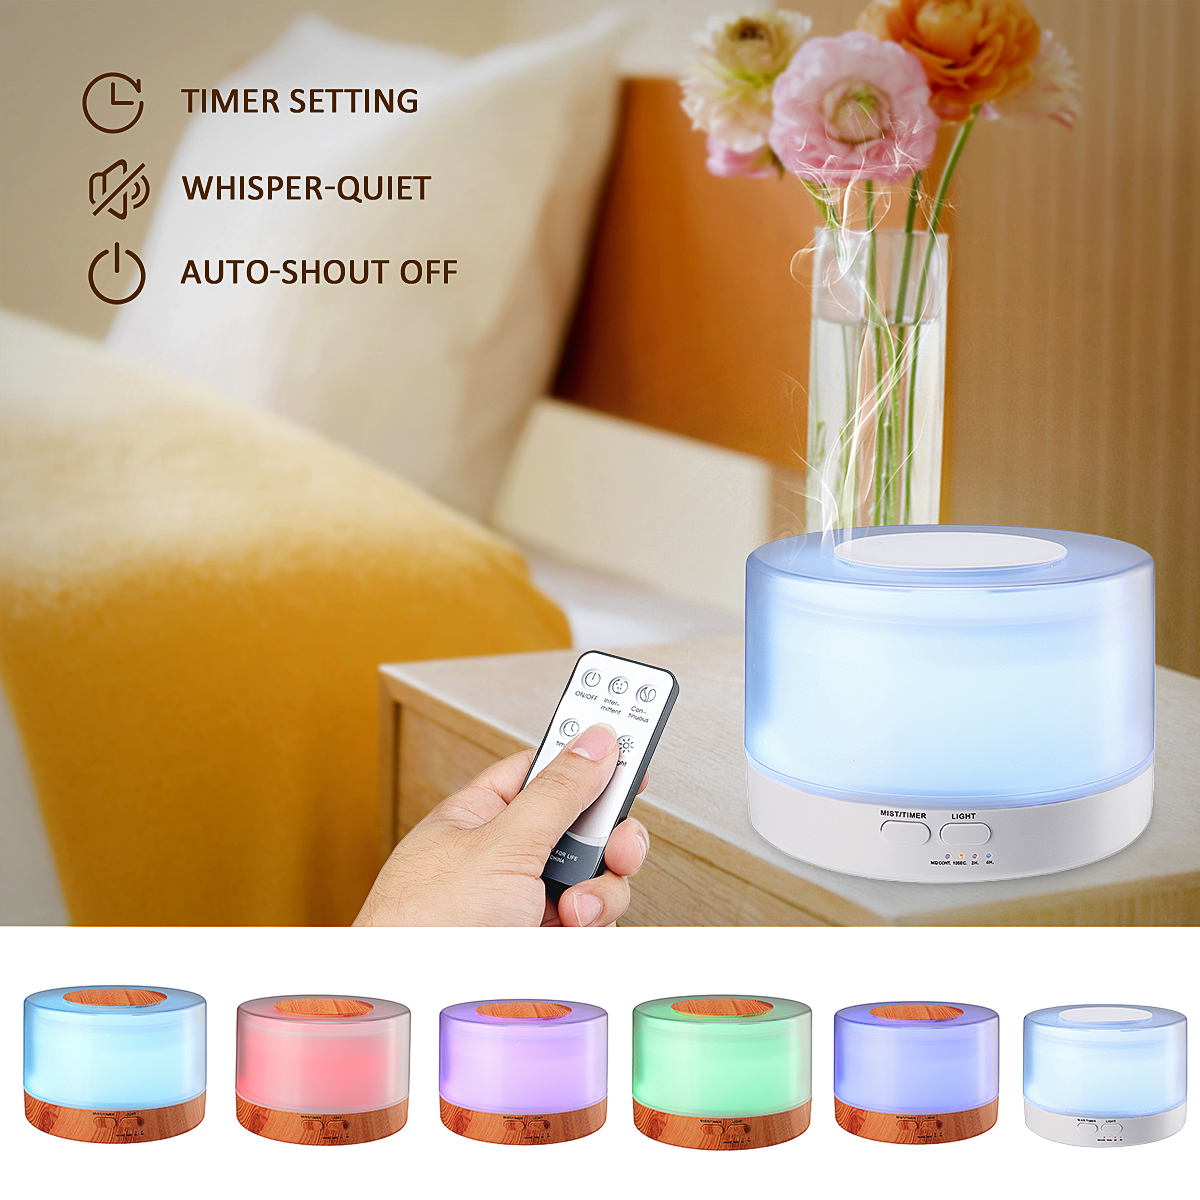 700ml Water Tank Ultrasonic Humidifier Aroma LED Oil Diffuser Remote Control Air Purifier Auto Aroma Therapy UK/US/AU/EU Plug